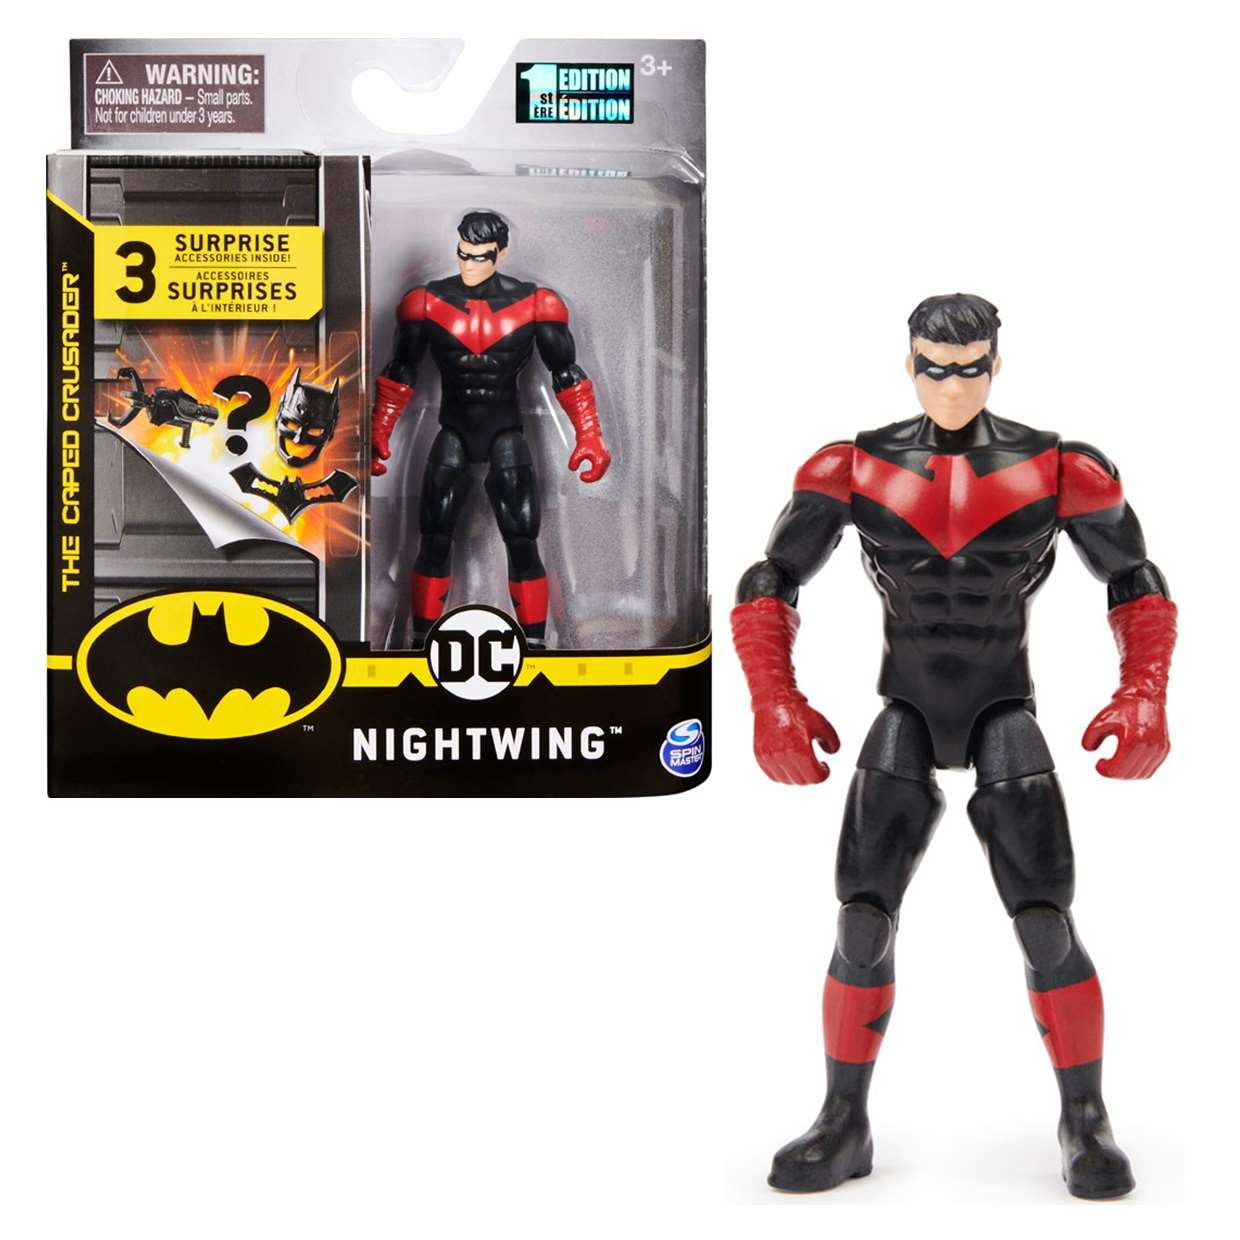 Nightwing Red Figura The Caped Crusader Spin Master 3 Pulg